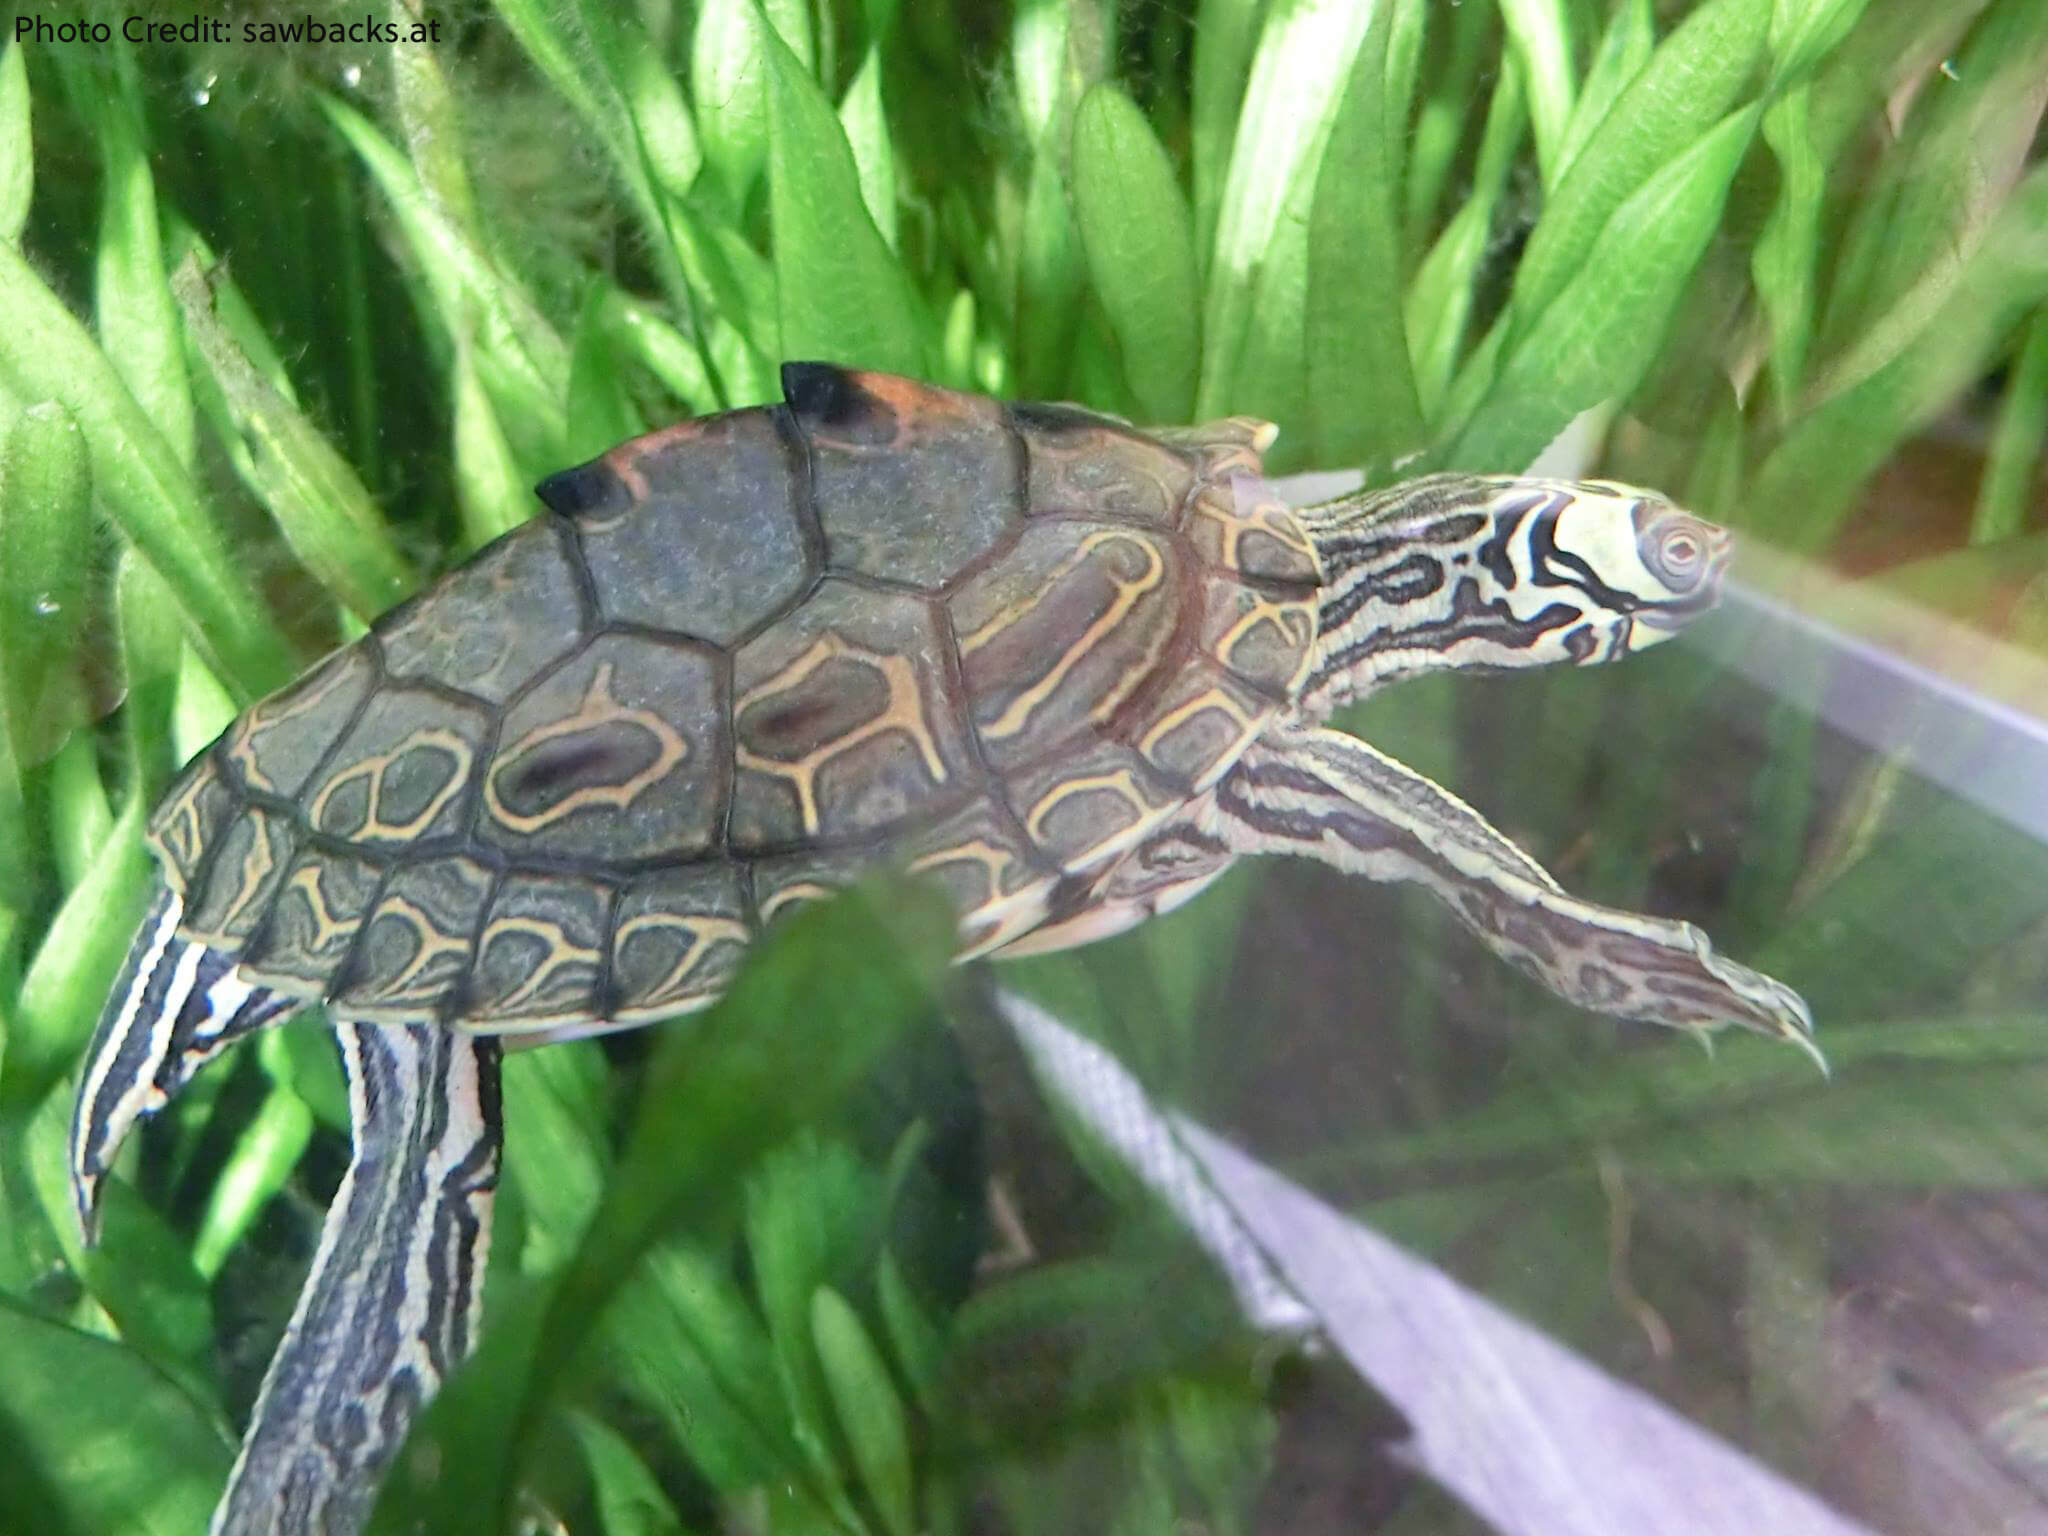 Adult Male Graptemys barbouri (Barbour's Map Turtle) - Photo Credit sawbacks.at